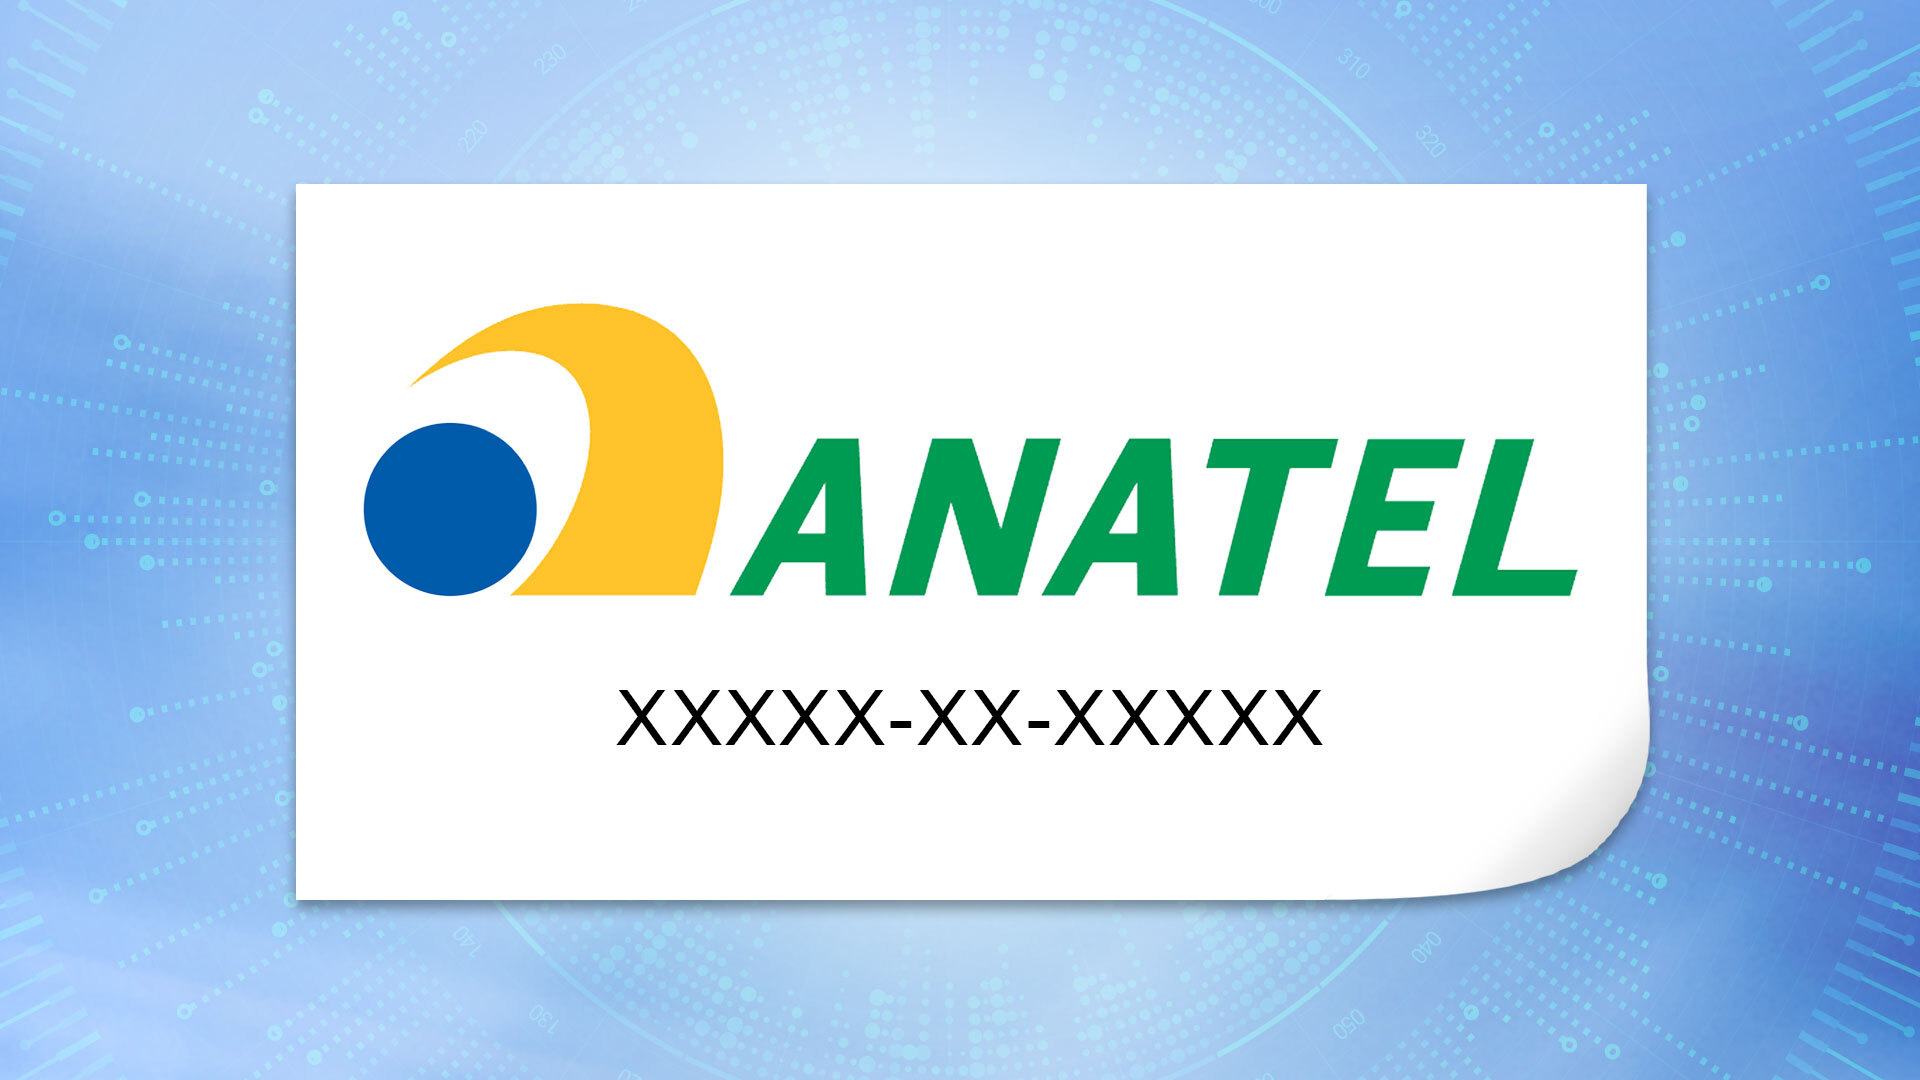 Label of the Anatel Certification